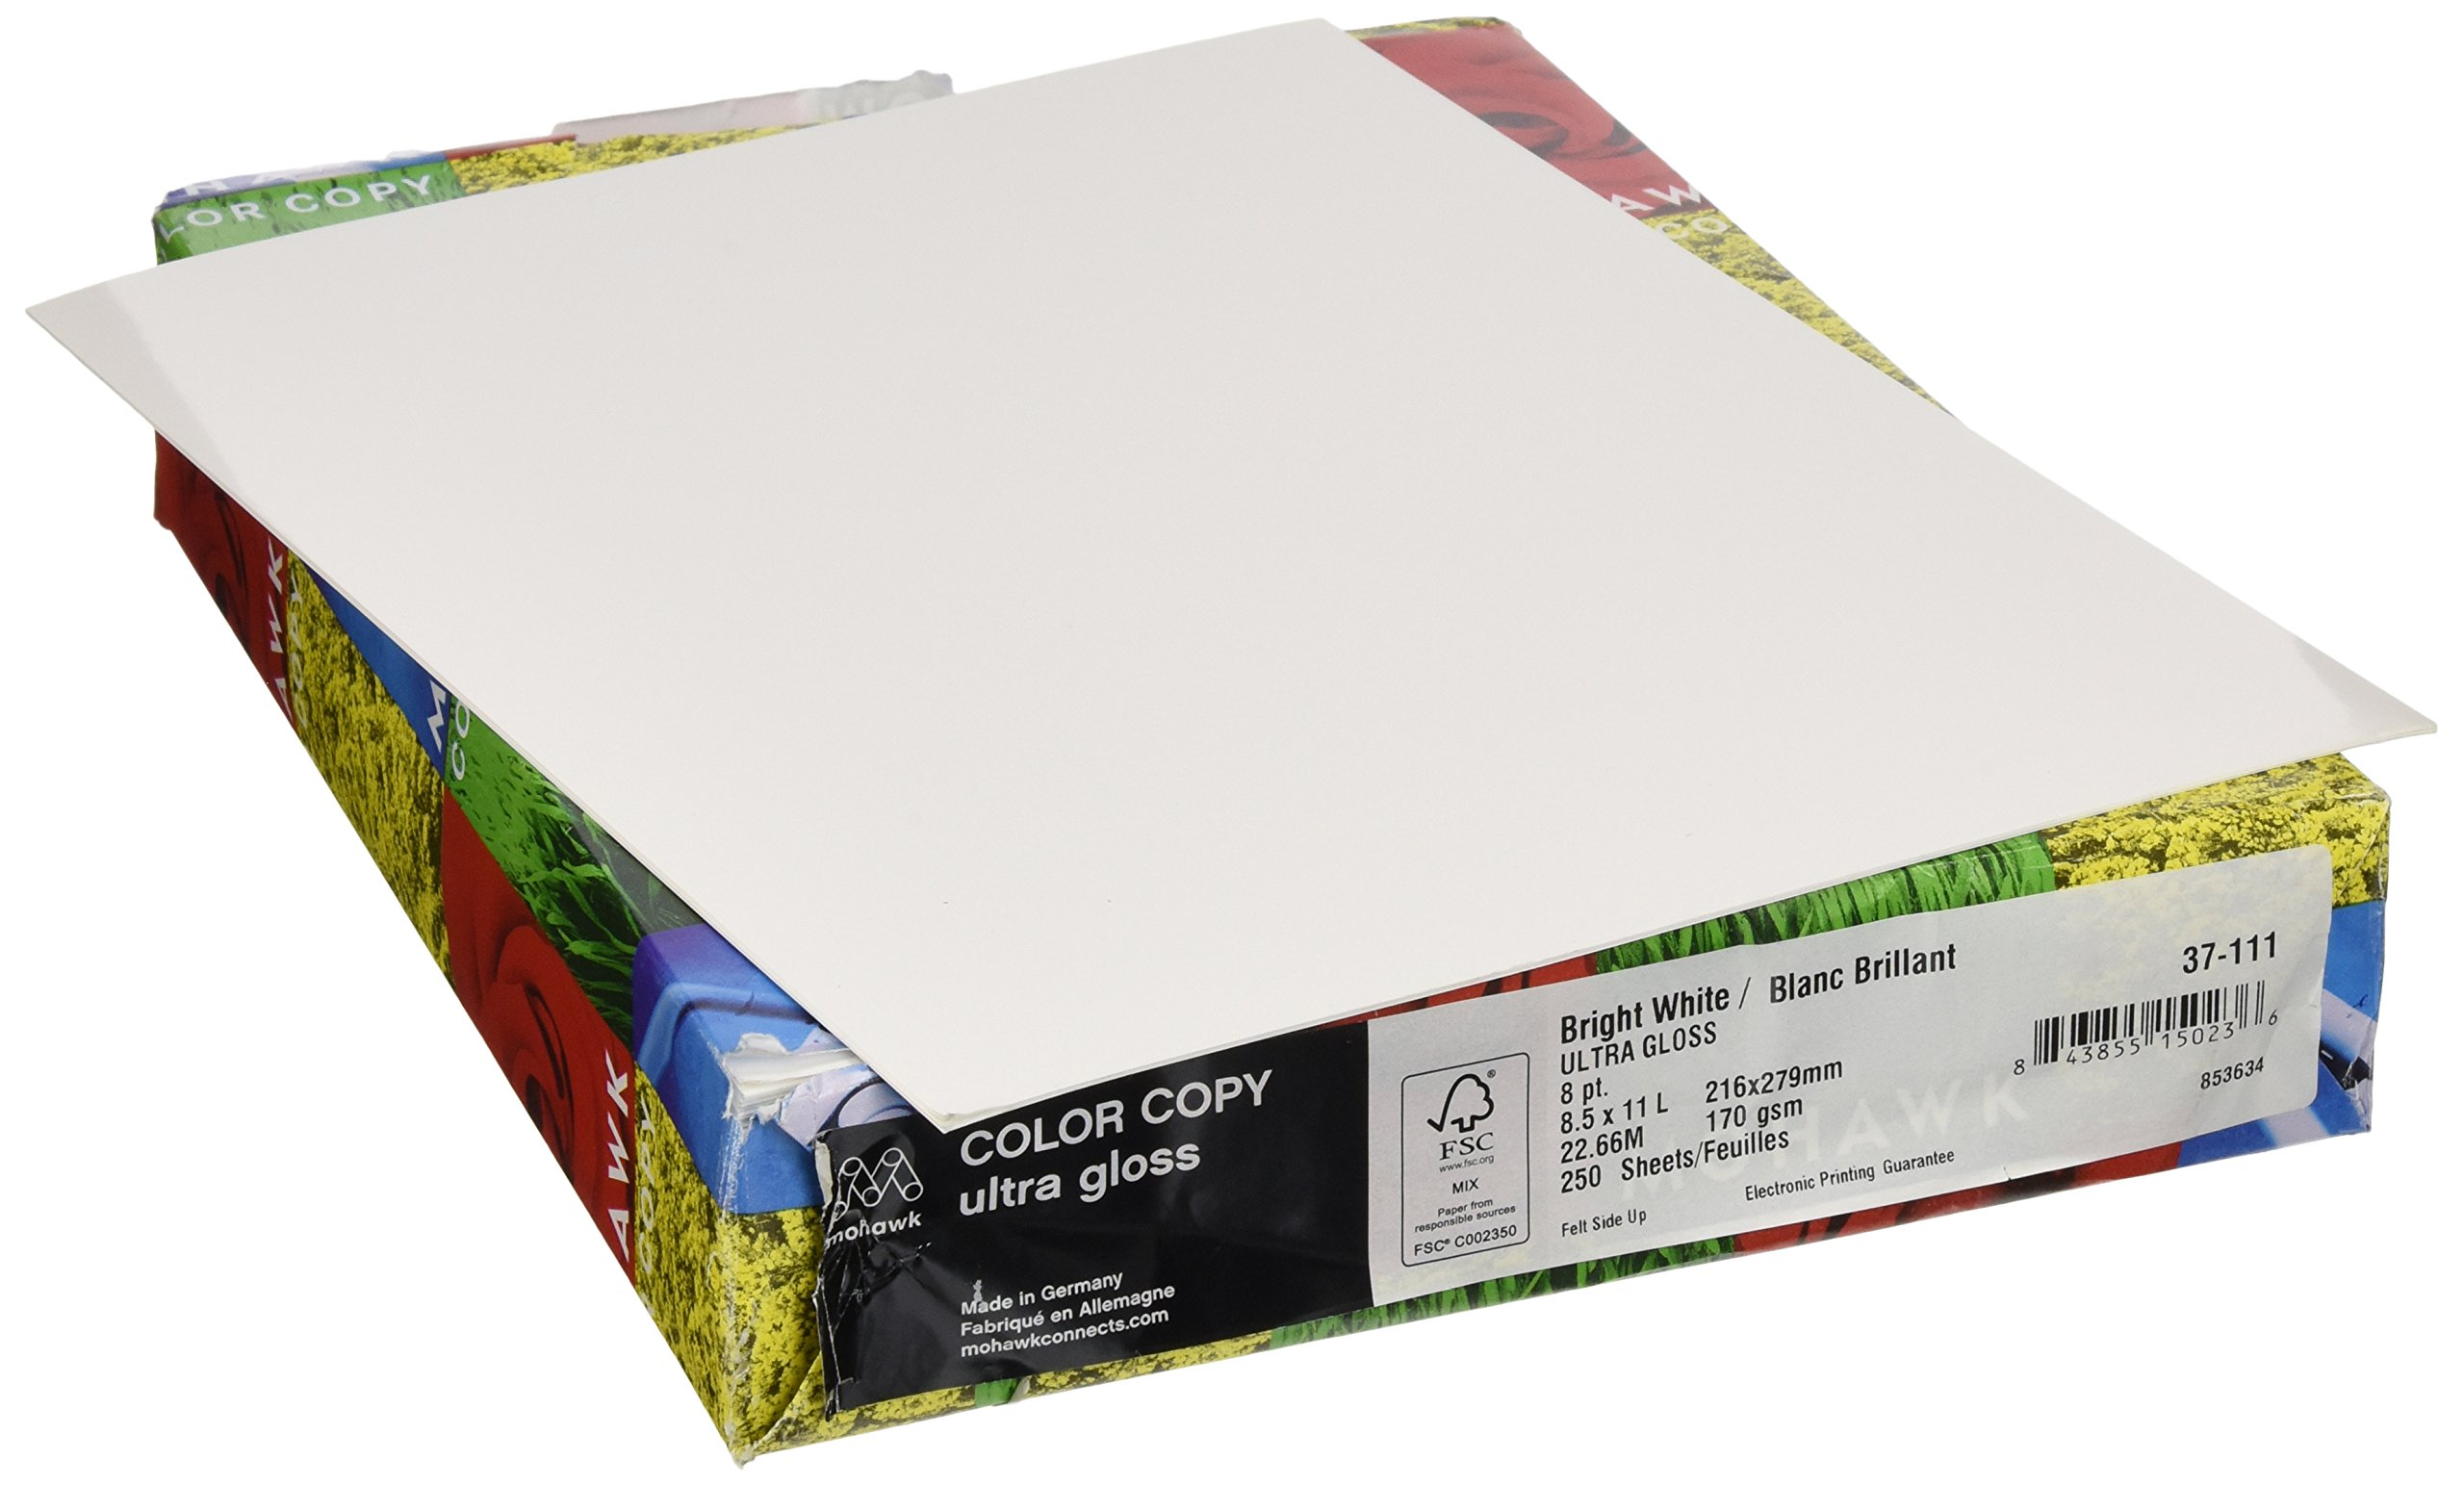 Mohawk Color Copy Ultra Gloss Cover Paper 92-Bright White Shade, 8-Point 8.5 x 11 Inches 30% pcw 250 Sheets/Ream - Sold as 1 Ream (37-111)